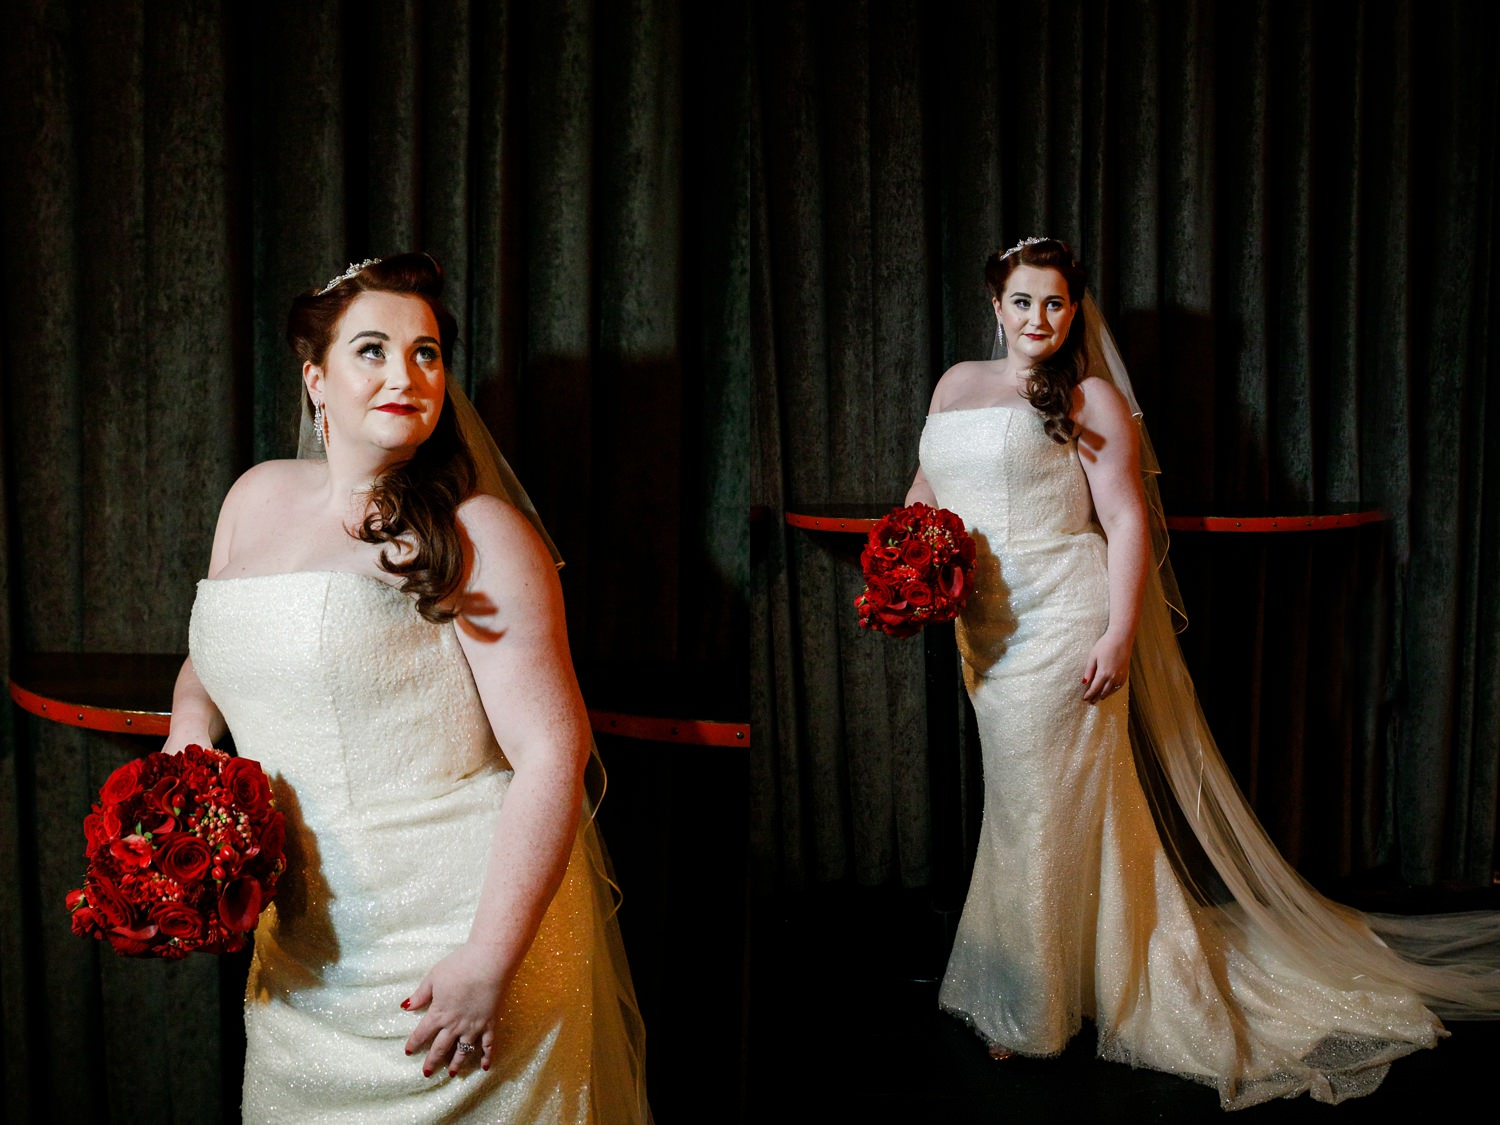 Elisha-Clarke-Photography-Dublin-City-Wedding_00350.jpg